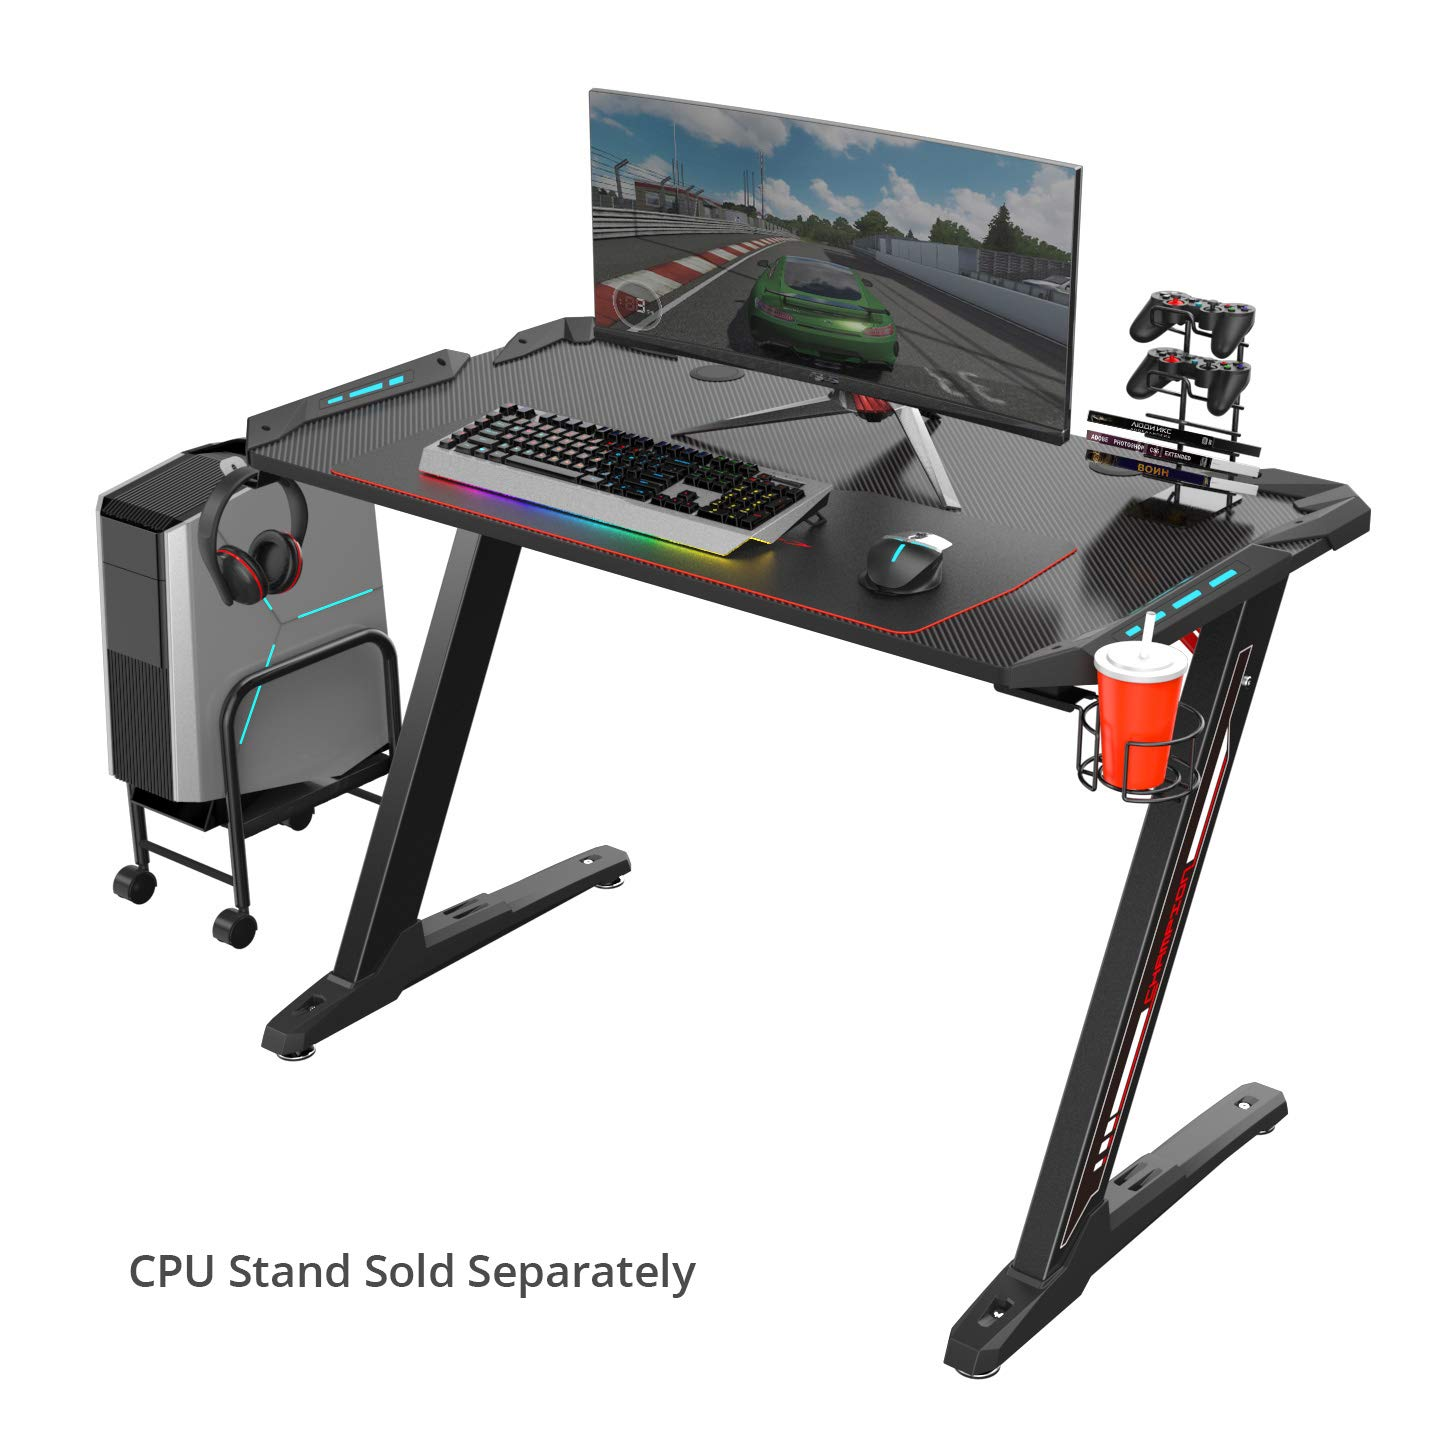 25 Best Gaming Desks [ UPDATED 2019 ]- See this! Before you Buy